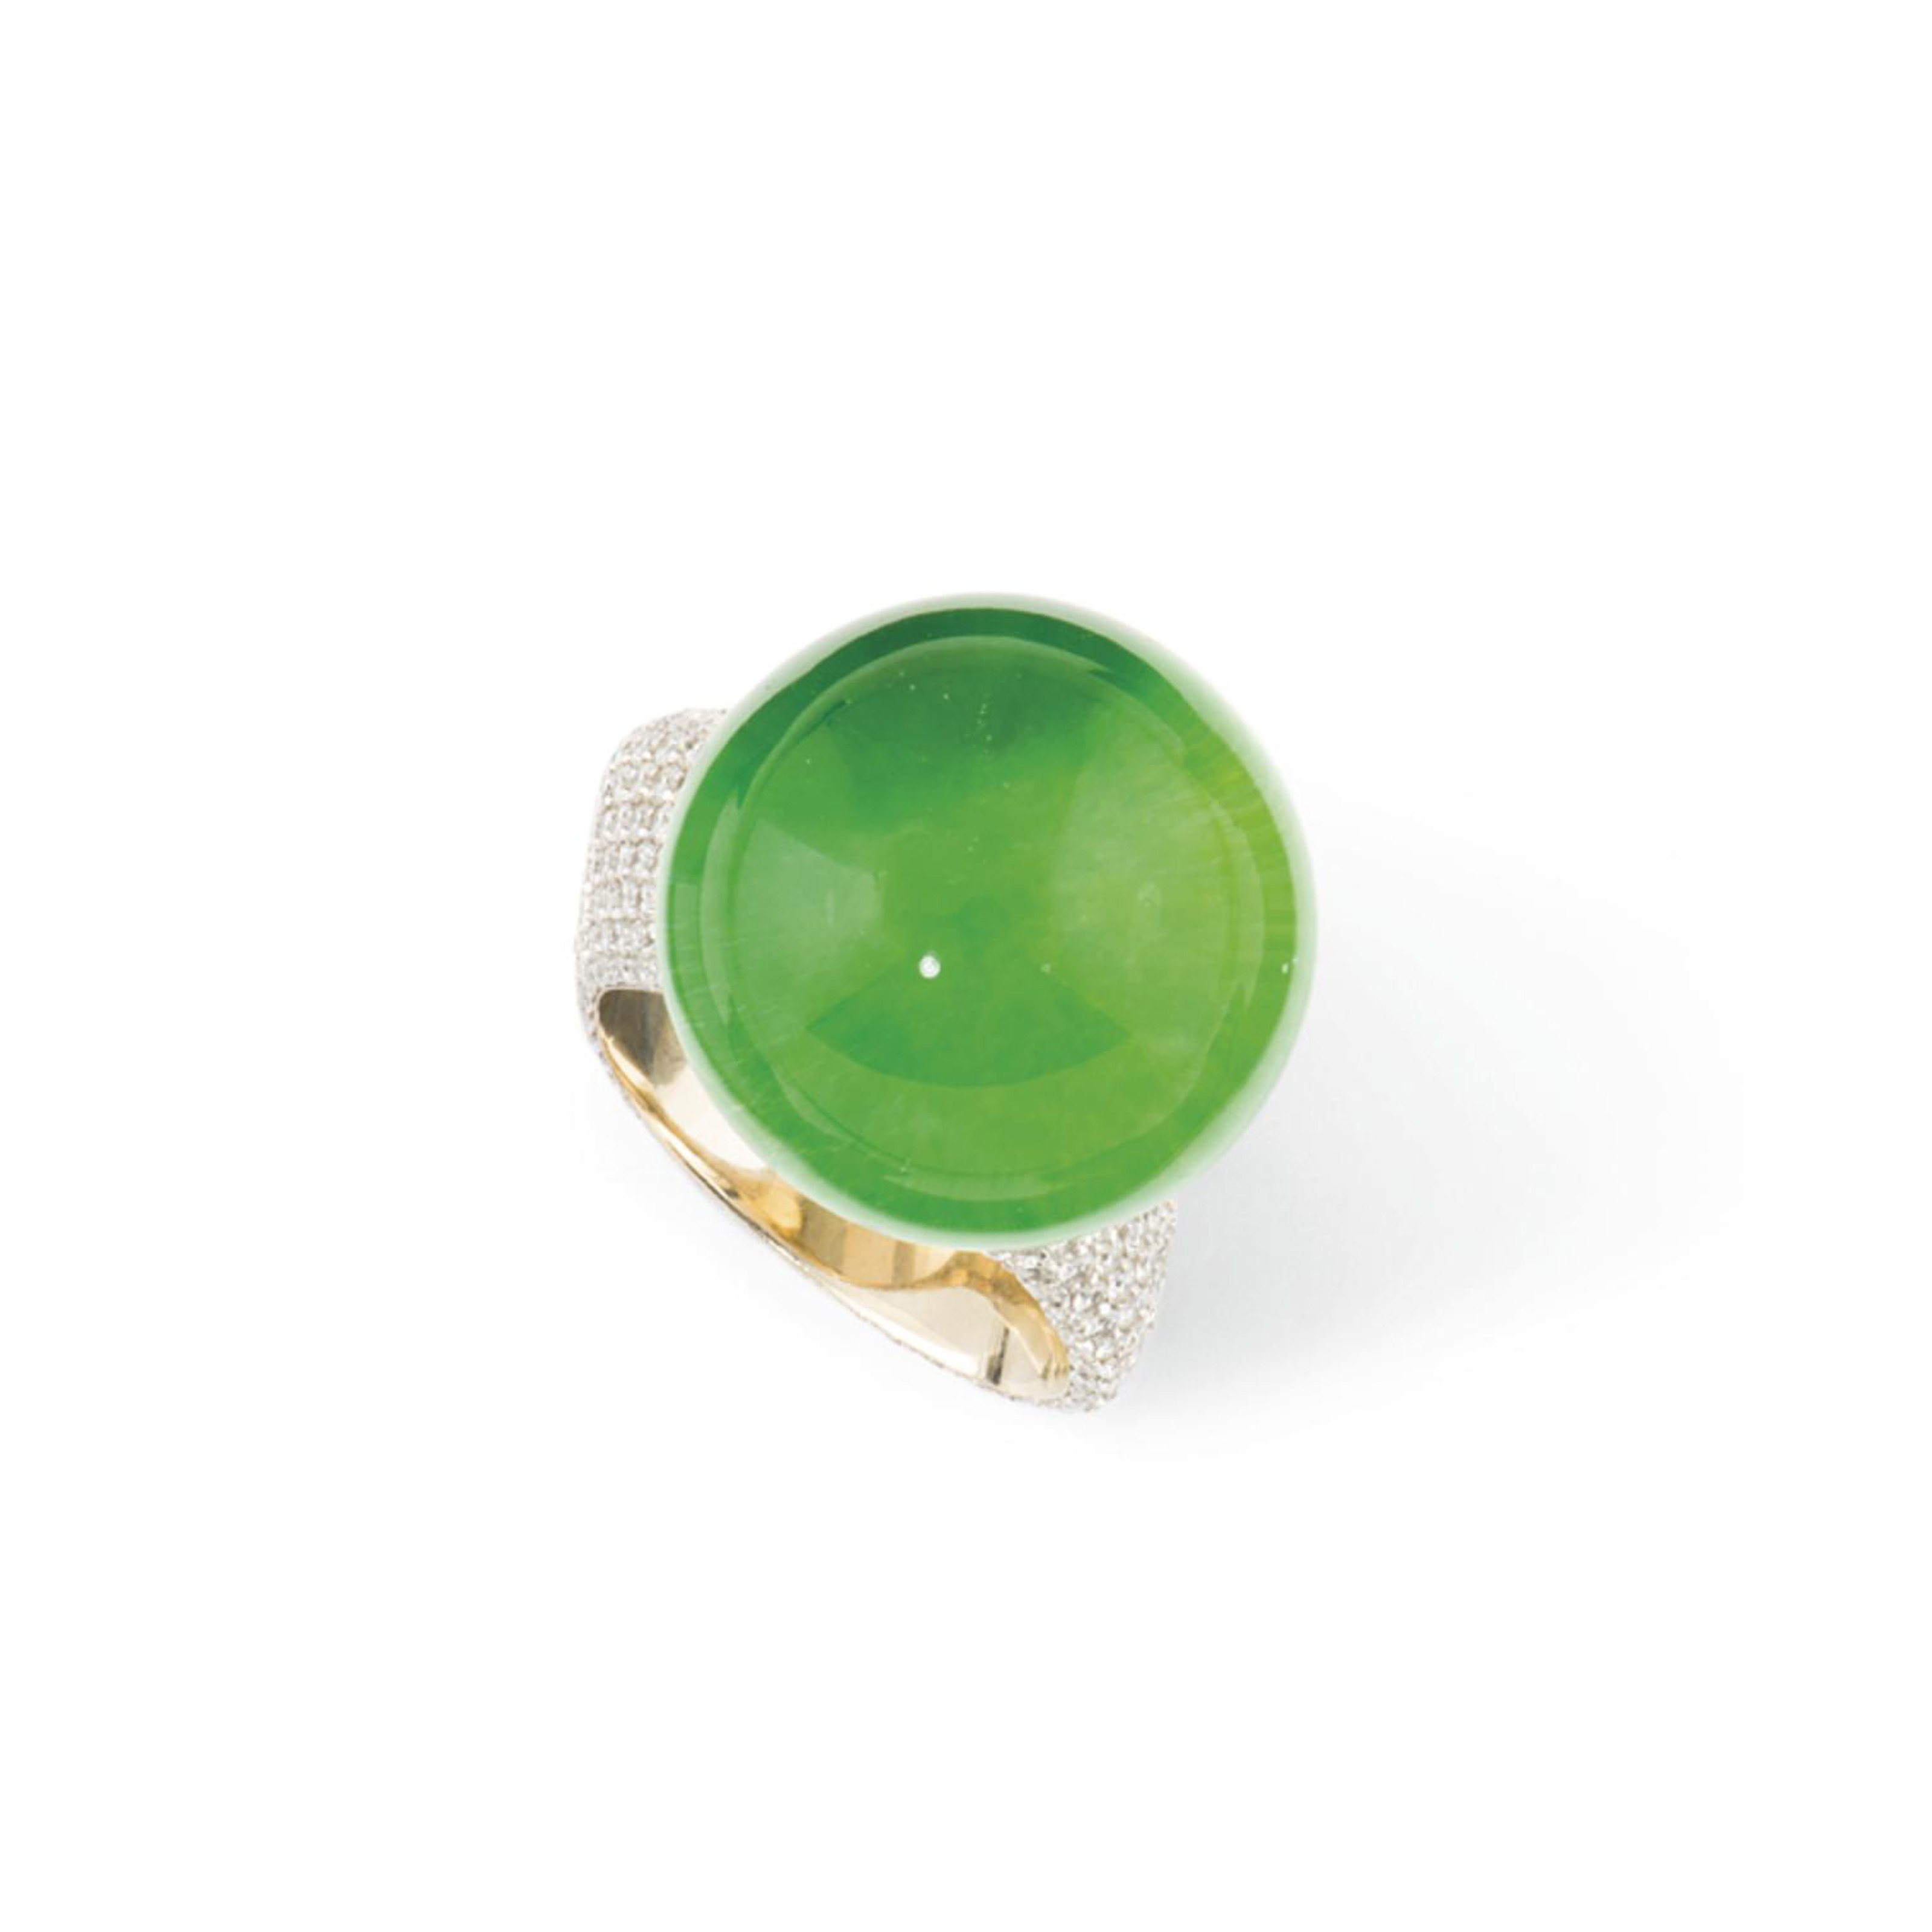 A DIAMOND, ROCK CRYSTAL AND JADEITE JADE RING, BY VHERNIER